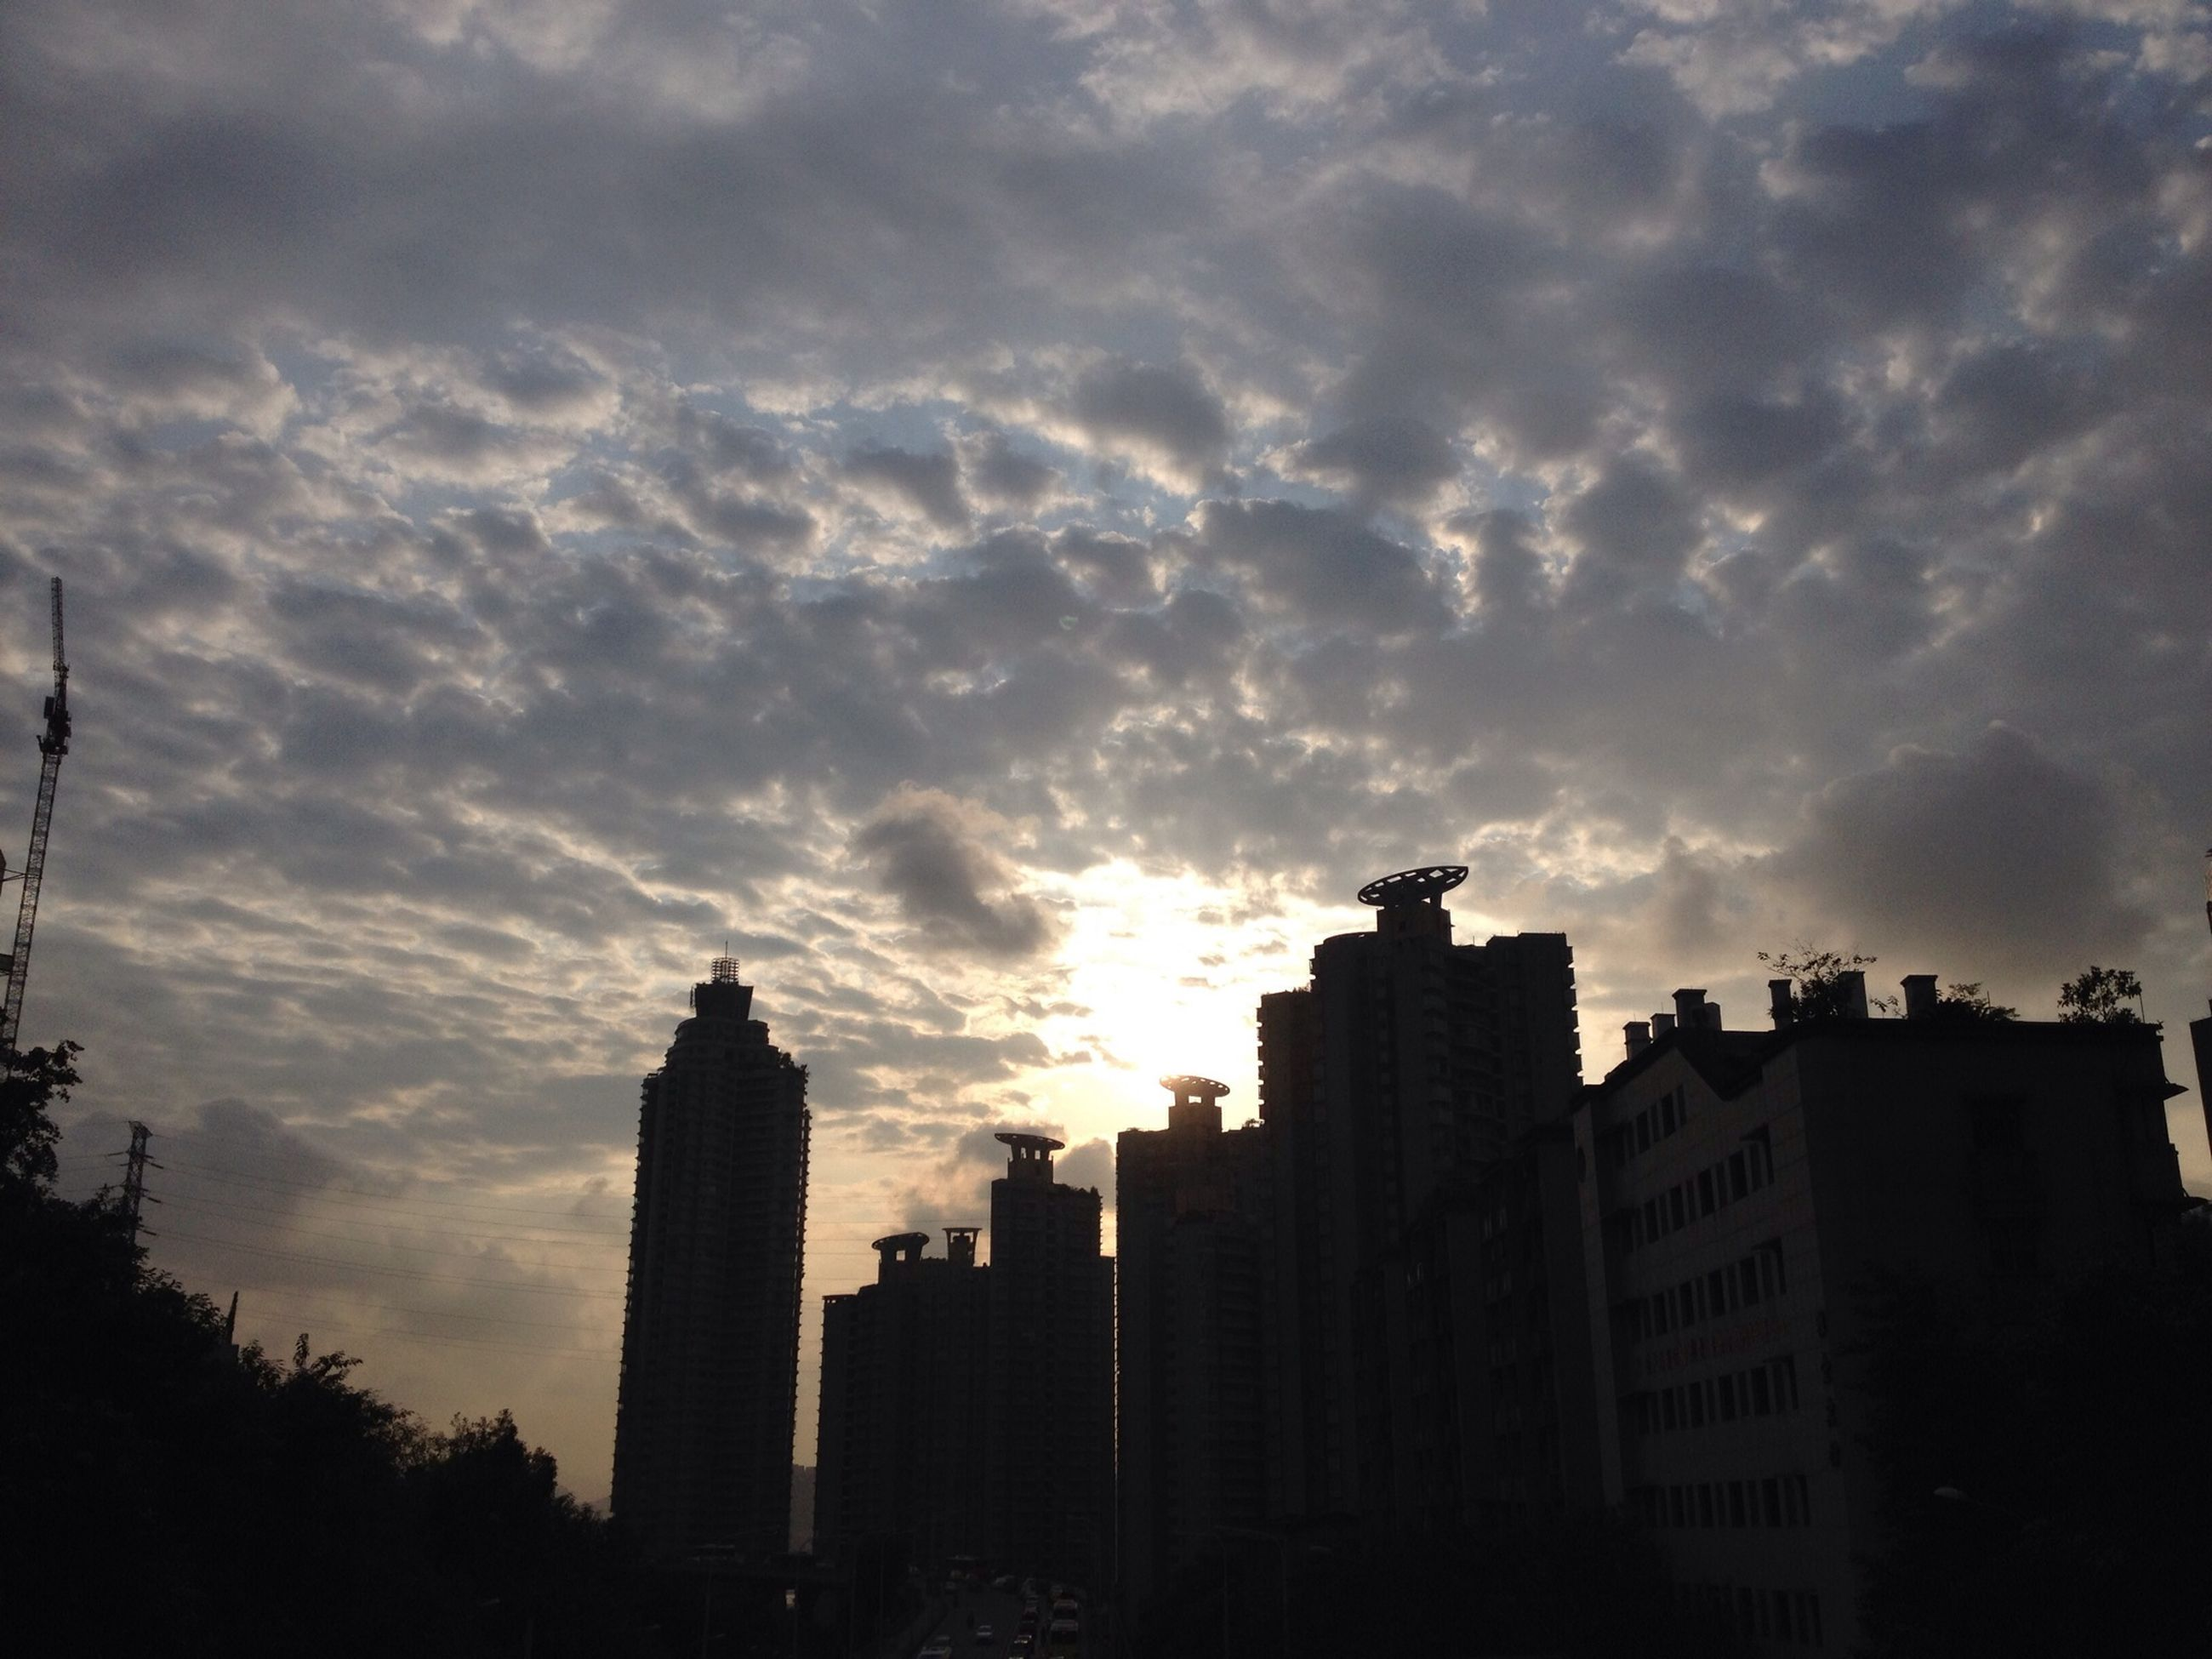 building exterior, architecture, built structure, sky, city, silhouette, sunset, cloud - sky, cloudy, low angle view, building, cloud, skyscraper, dusk, cityscape, city life, outdoors, overcast, residential building, tower